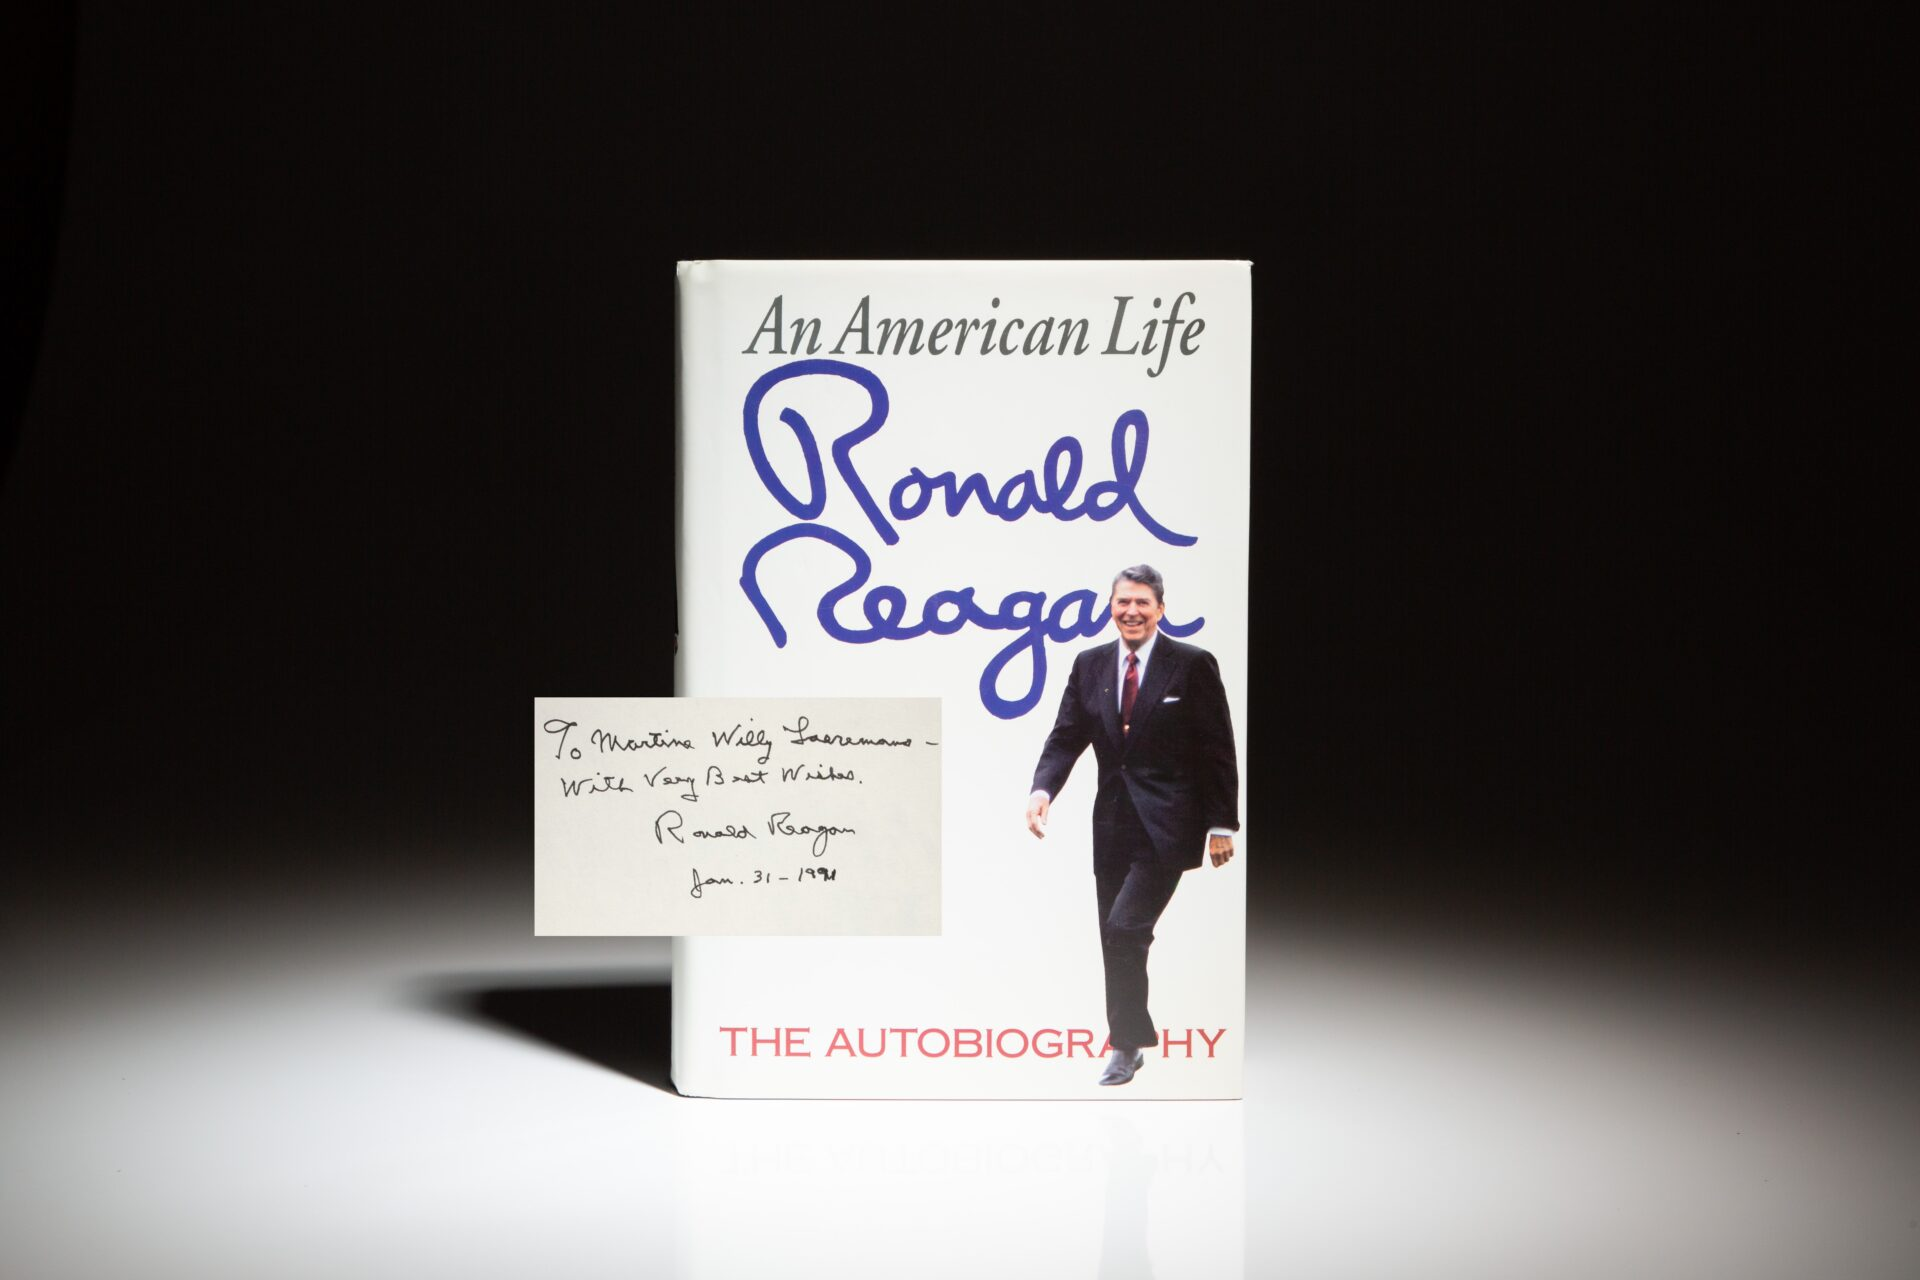 First edition of An American Life, inscribed by President Ronald Reagan to a supporter.